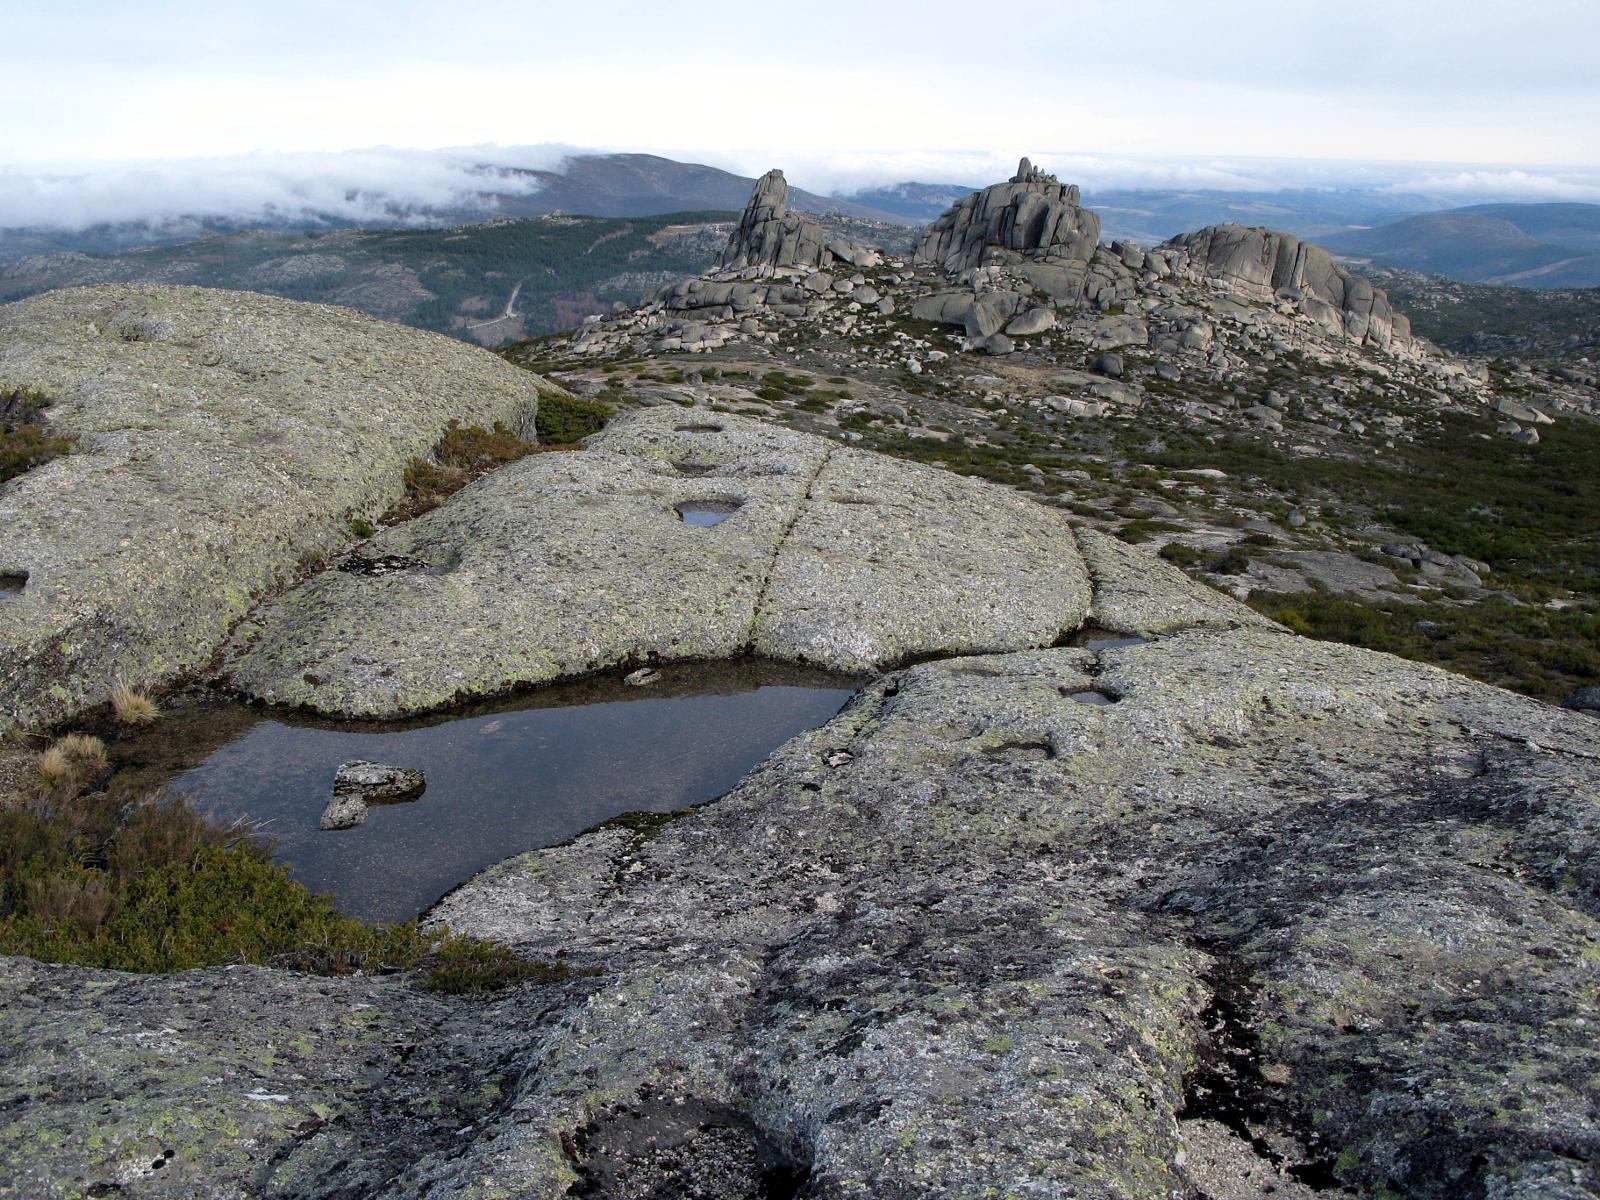 Photo of Vale do Rossim - Serra da Estrela